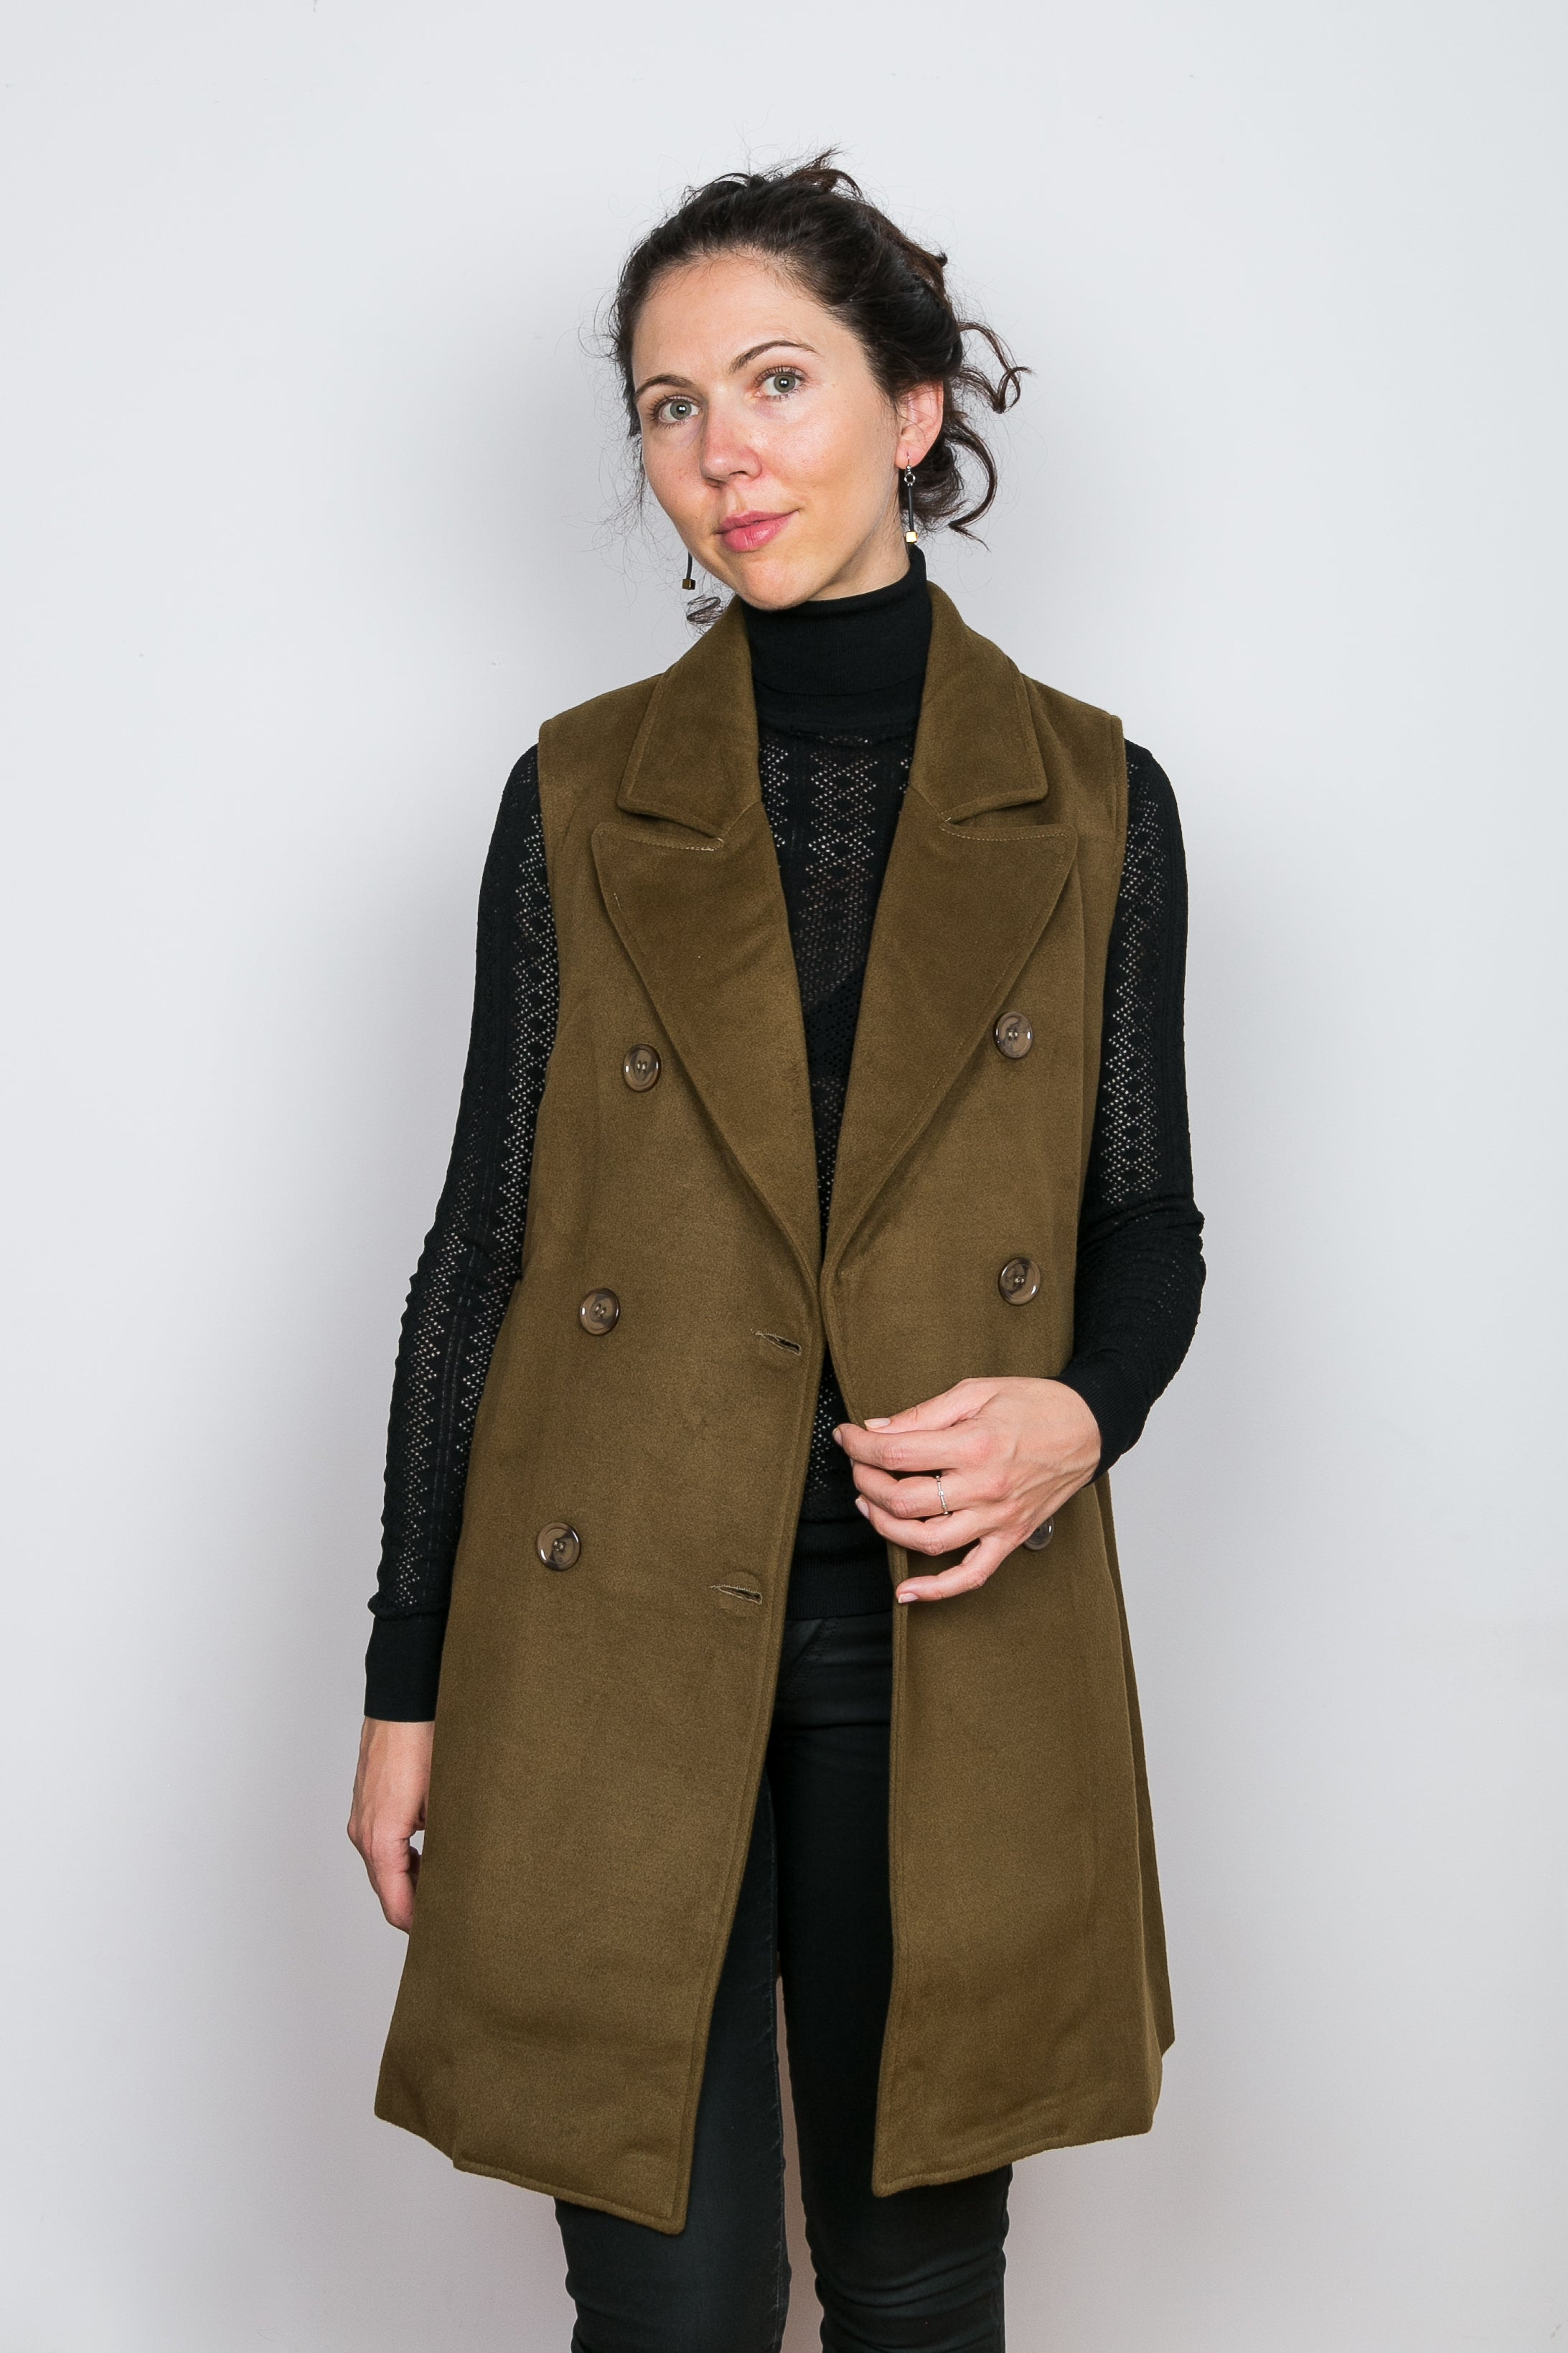 YUNA Wool Blend Sleeveless Jacket